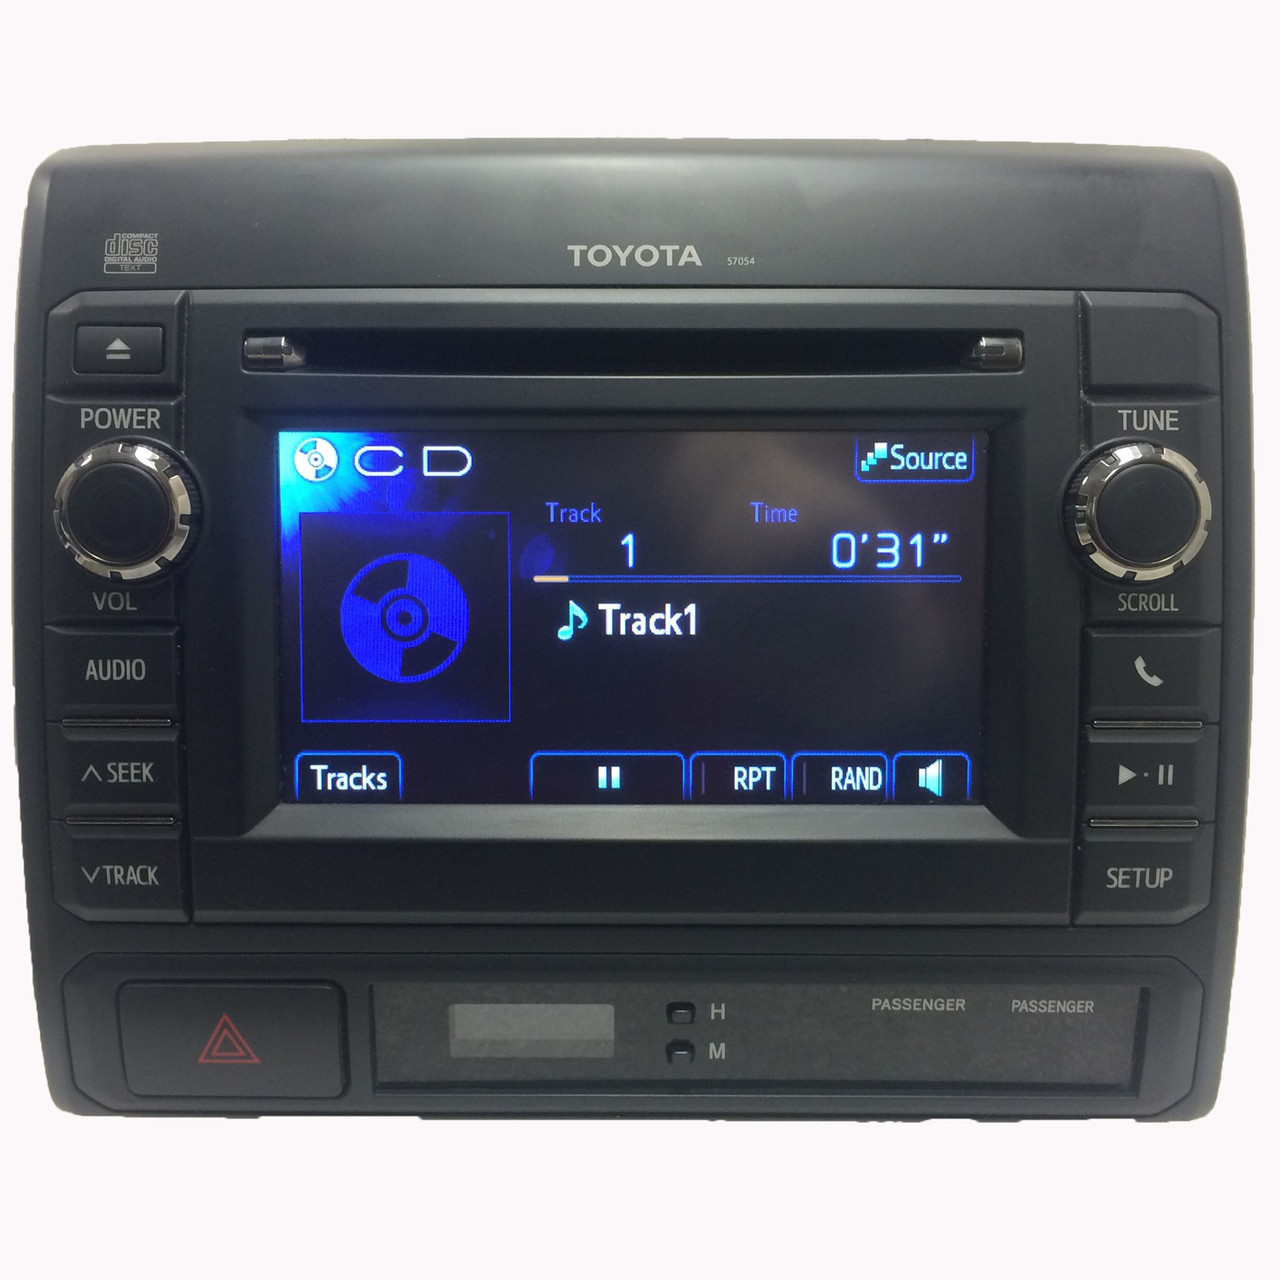 2013 toyota tacoma installation parts, harness, wires, kits, bluetooth,  iphone, tools, wire diagrams stereo